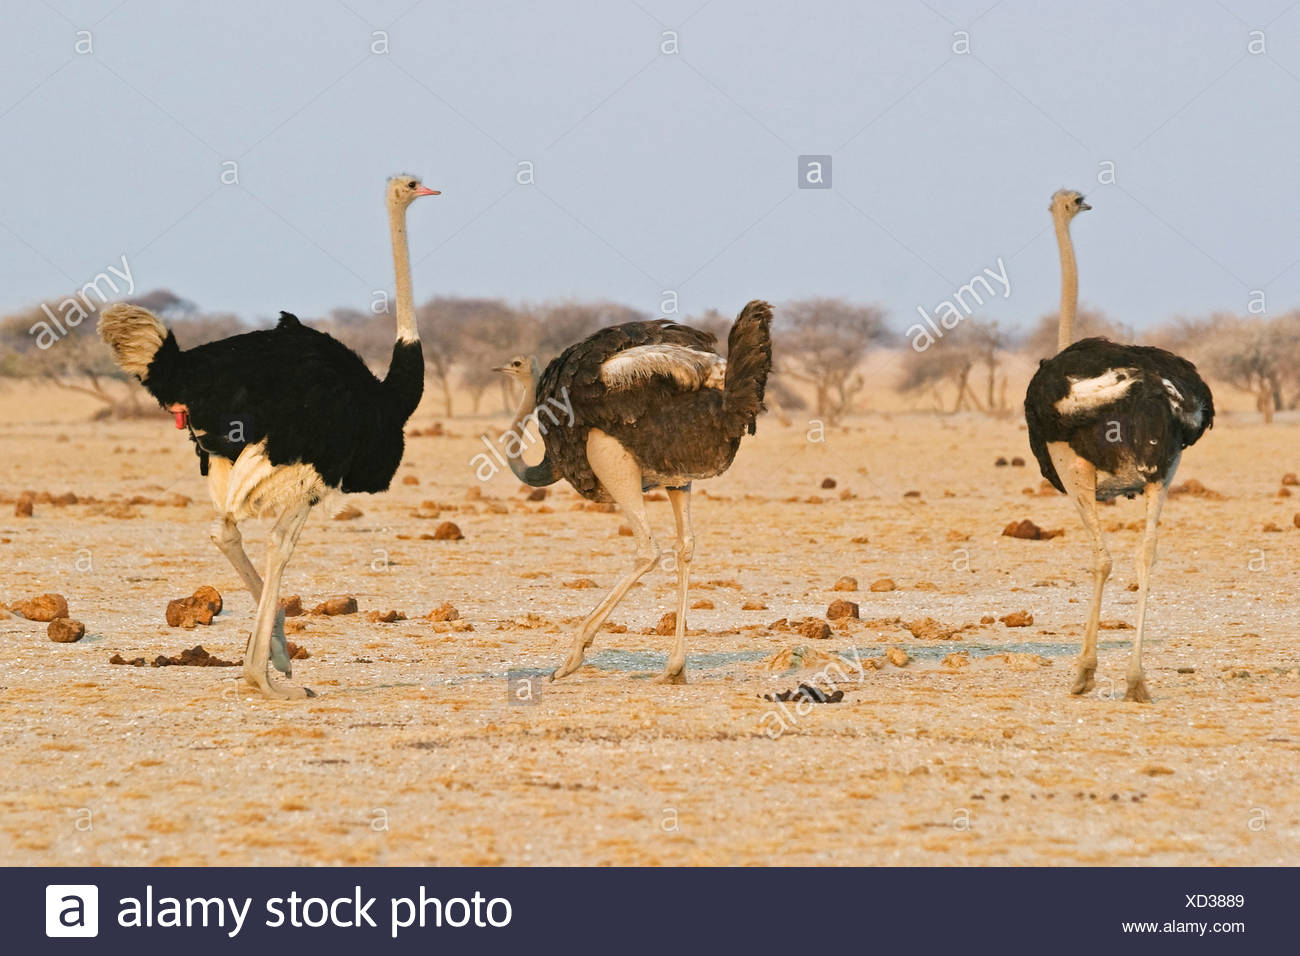 Ostrichs (Struthio camelus) courtships around a female osterich, Nxai Pan, Makgadikgadi Pans National Park, Botswana, Africa Stock Photo